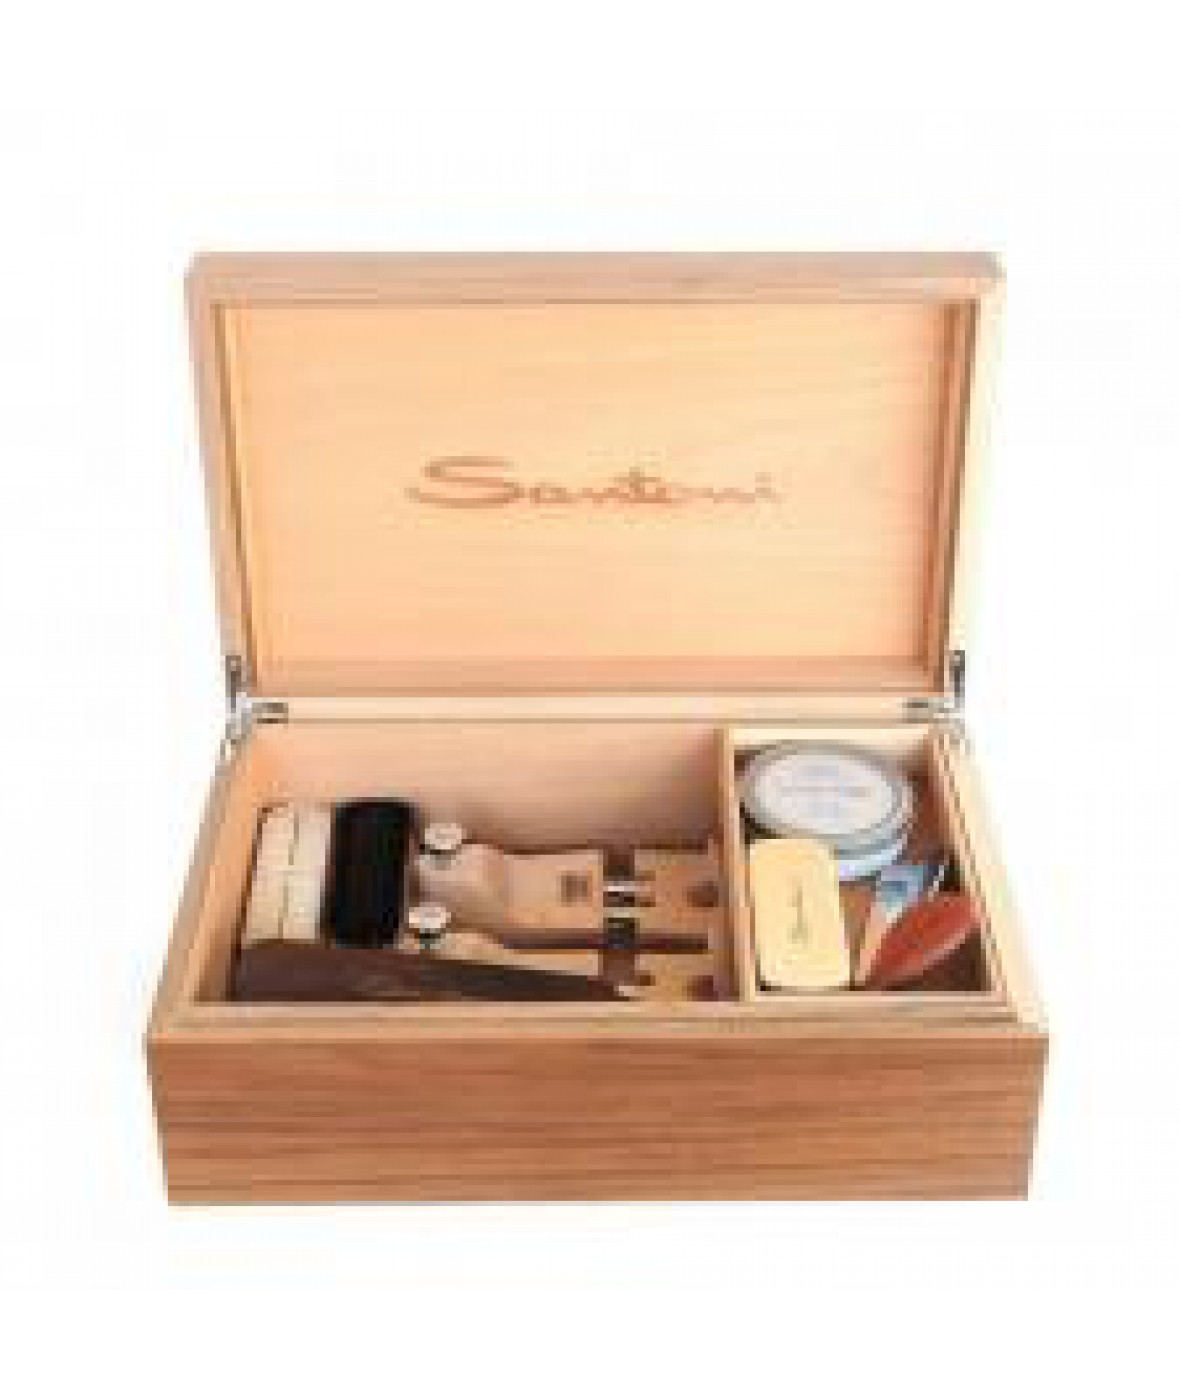 Santoni shoe care box